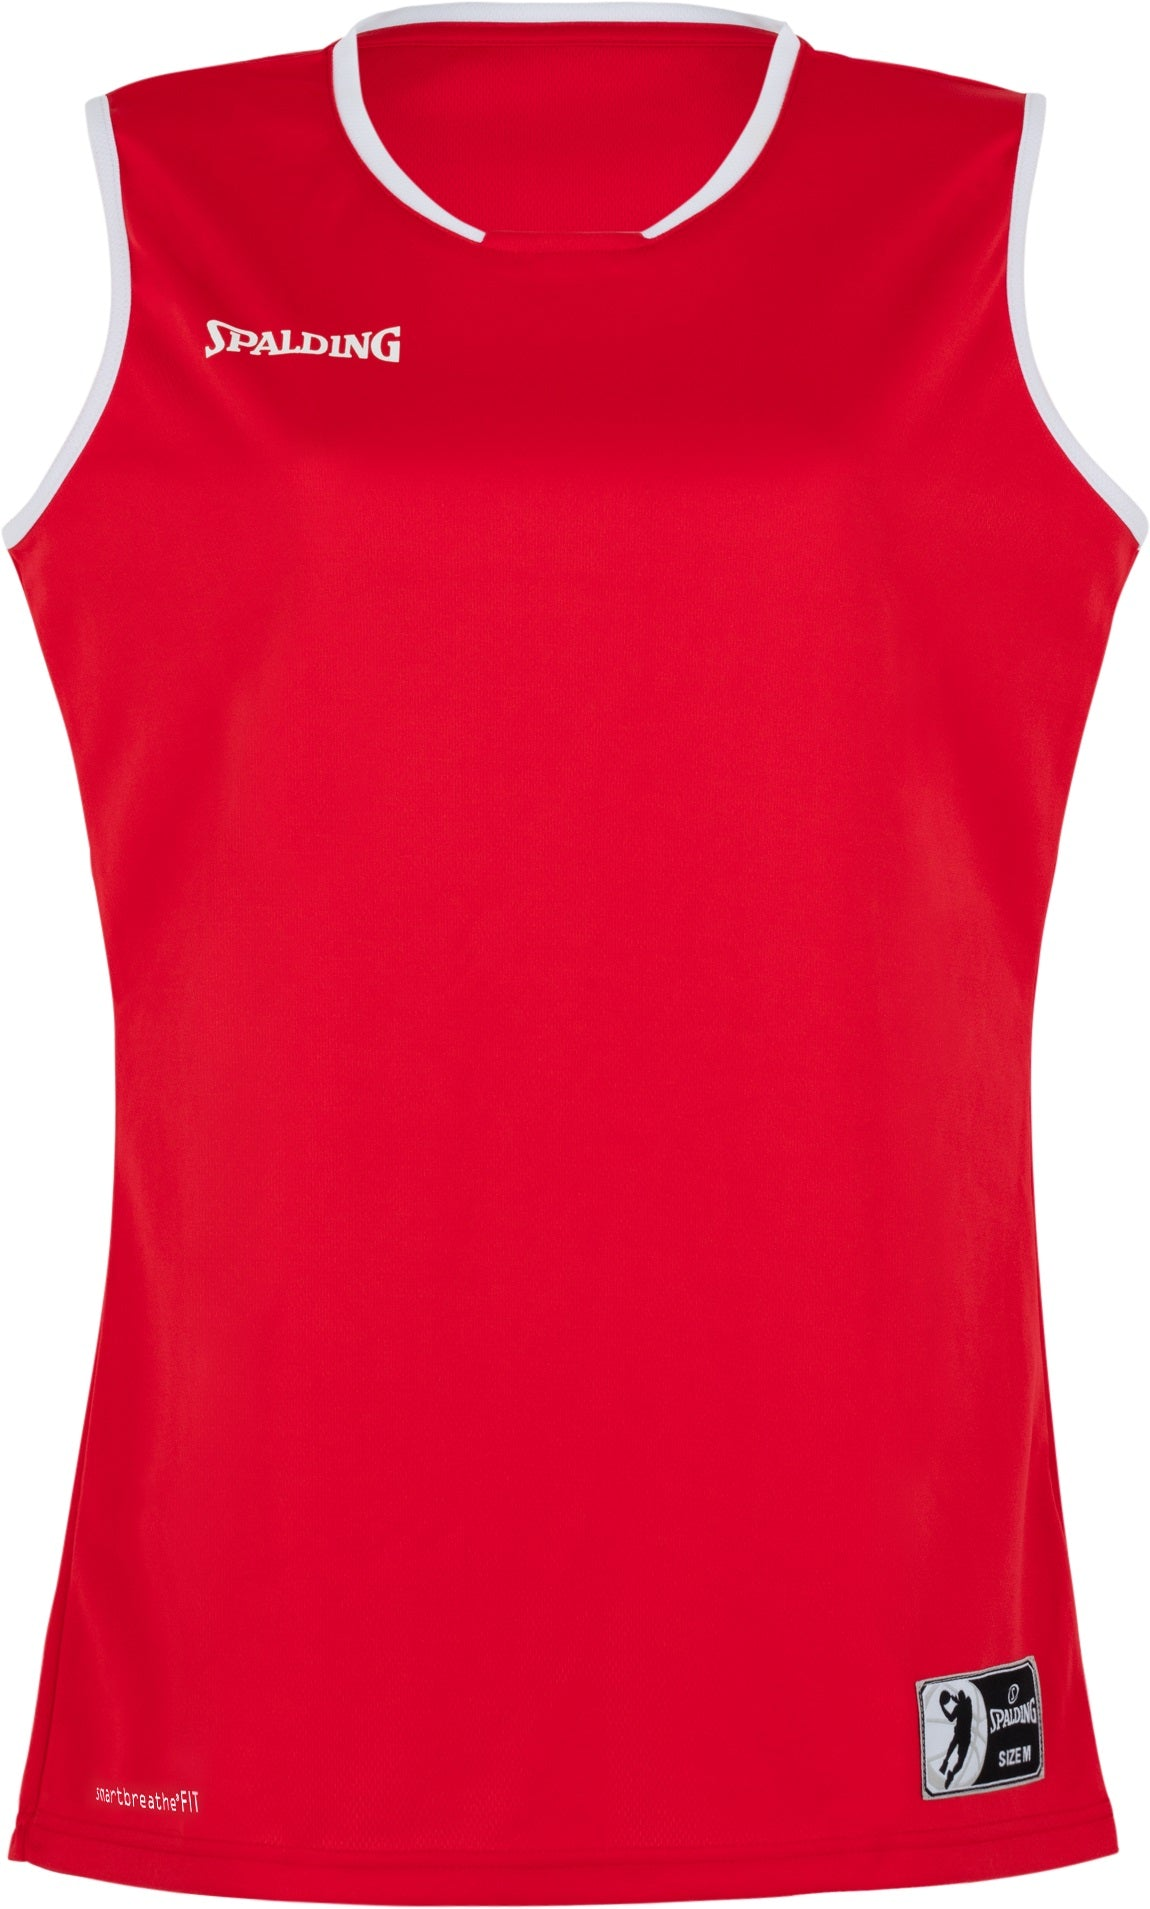 Teamwear - Spalding Women's Move Jersey